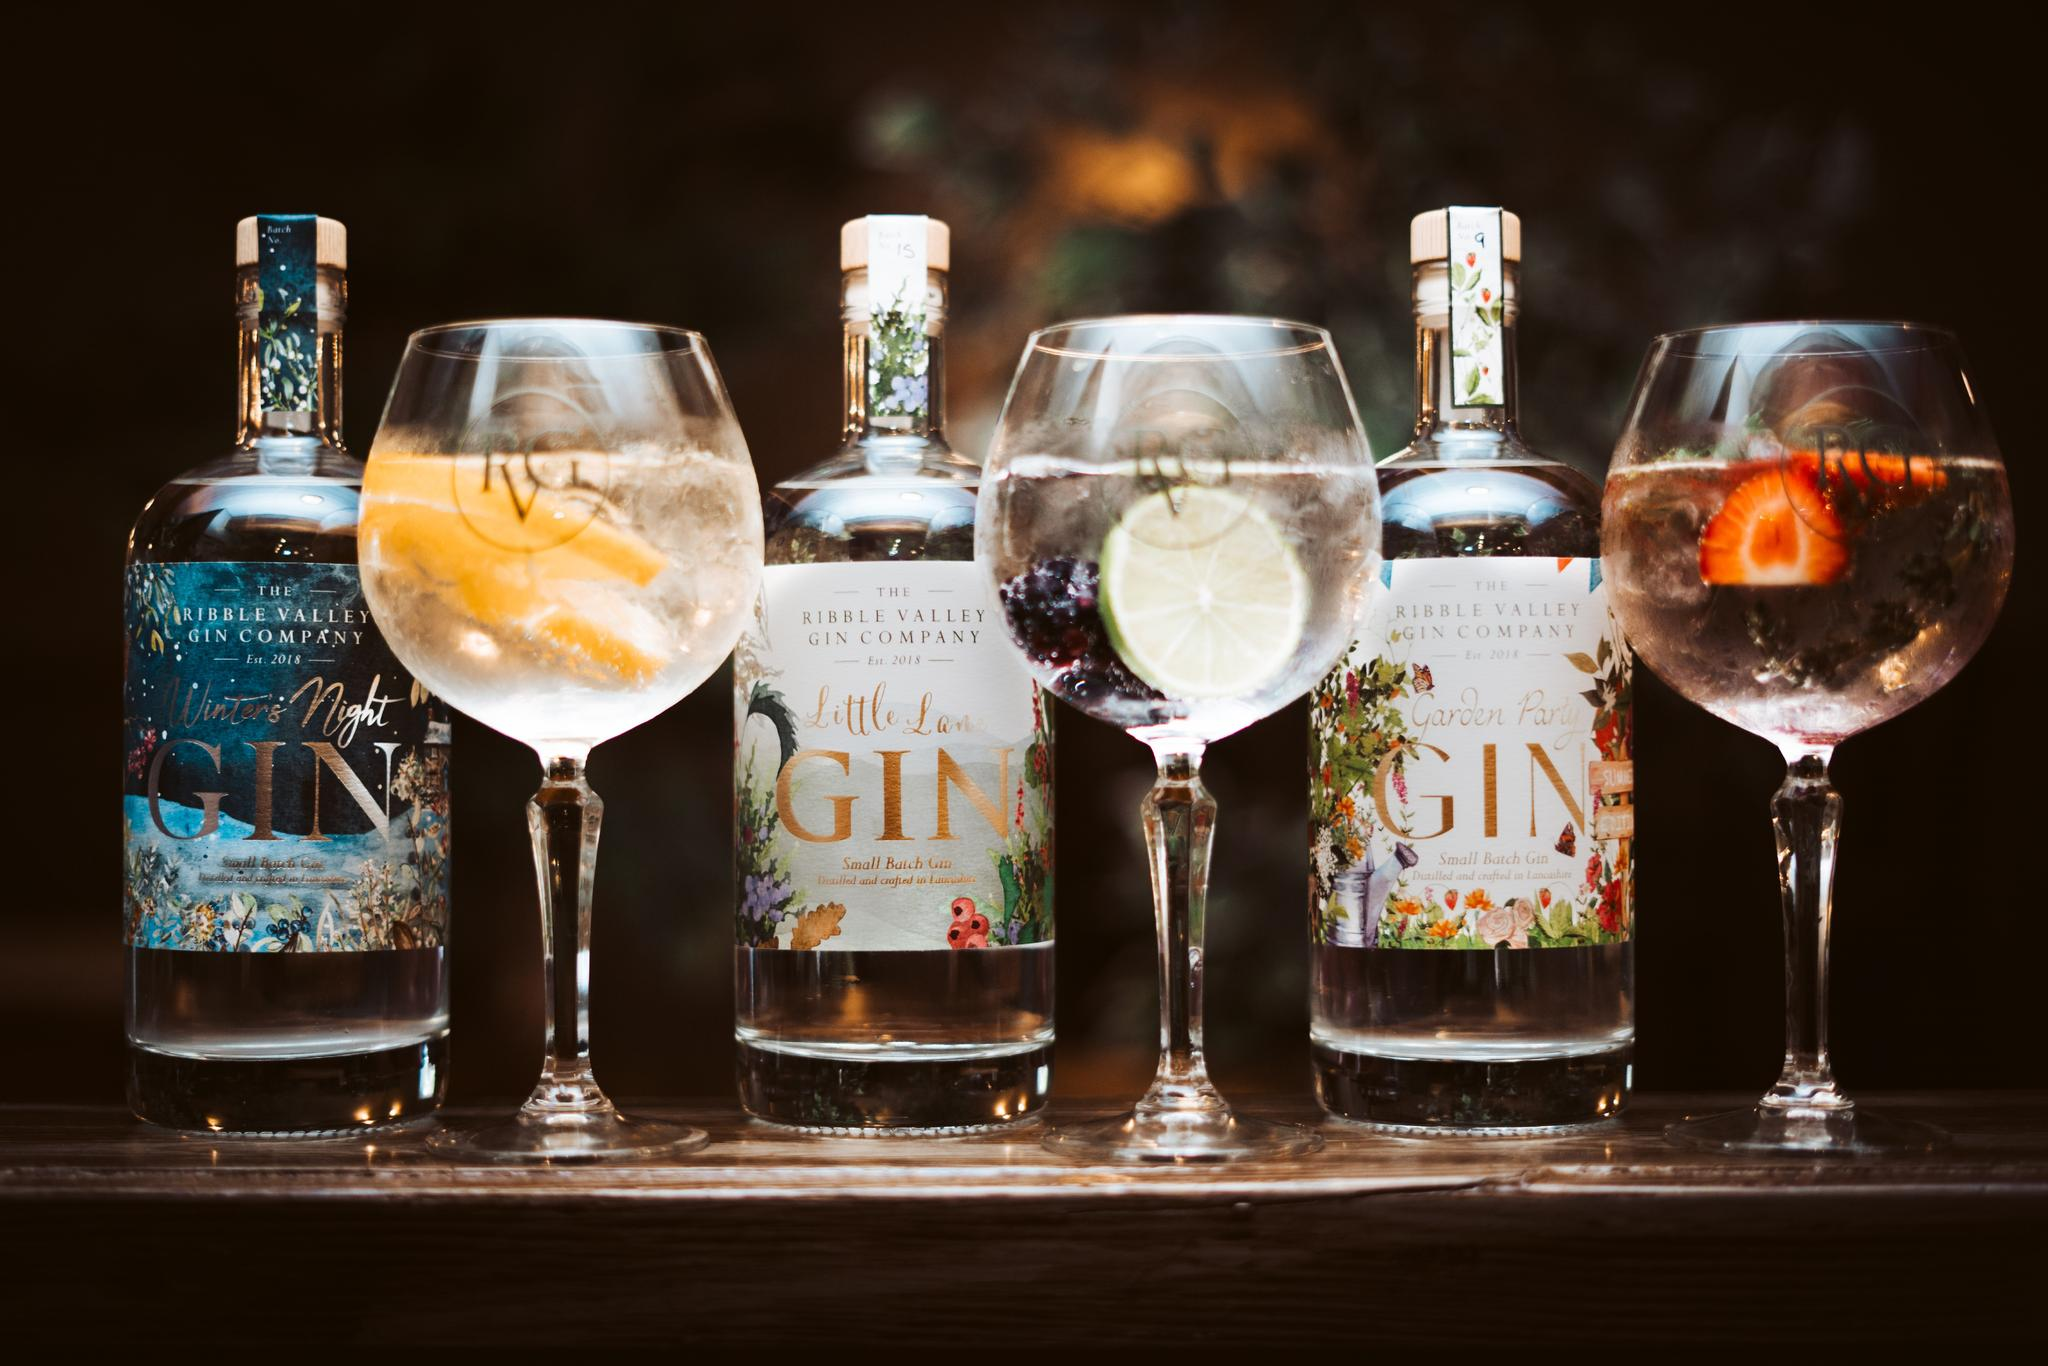 The Ribble Valley Gin Co